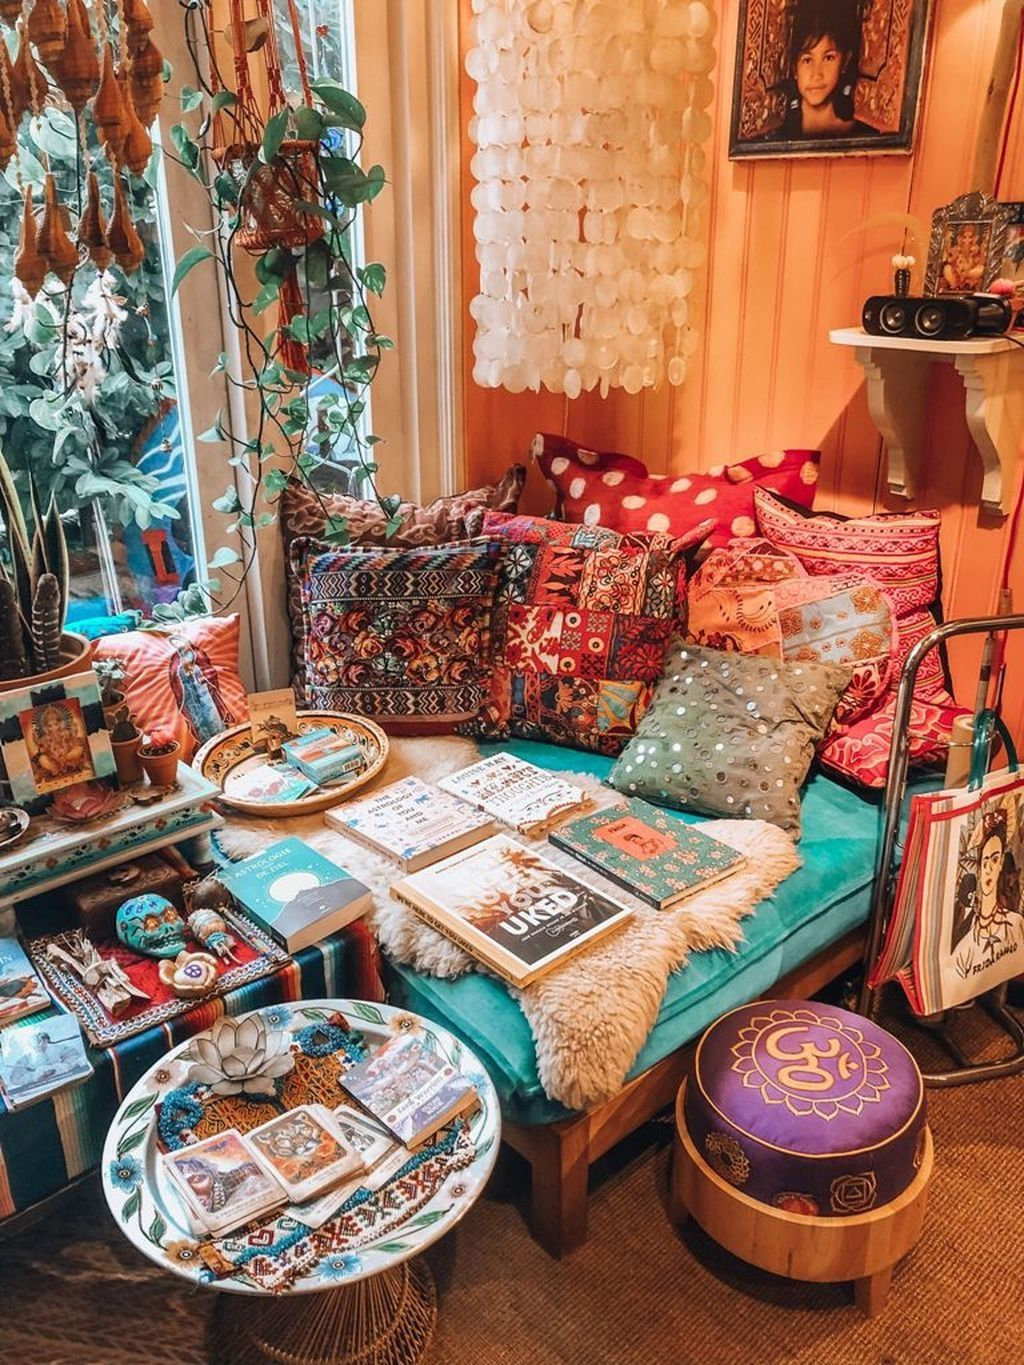 43 Awesome Bohemian Living Room Decor Ideas images